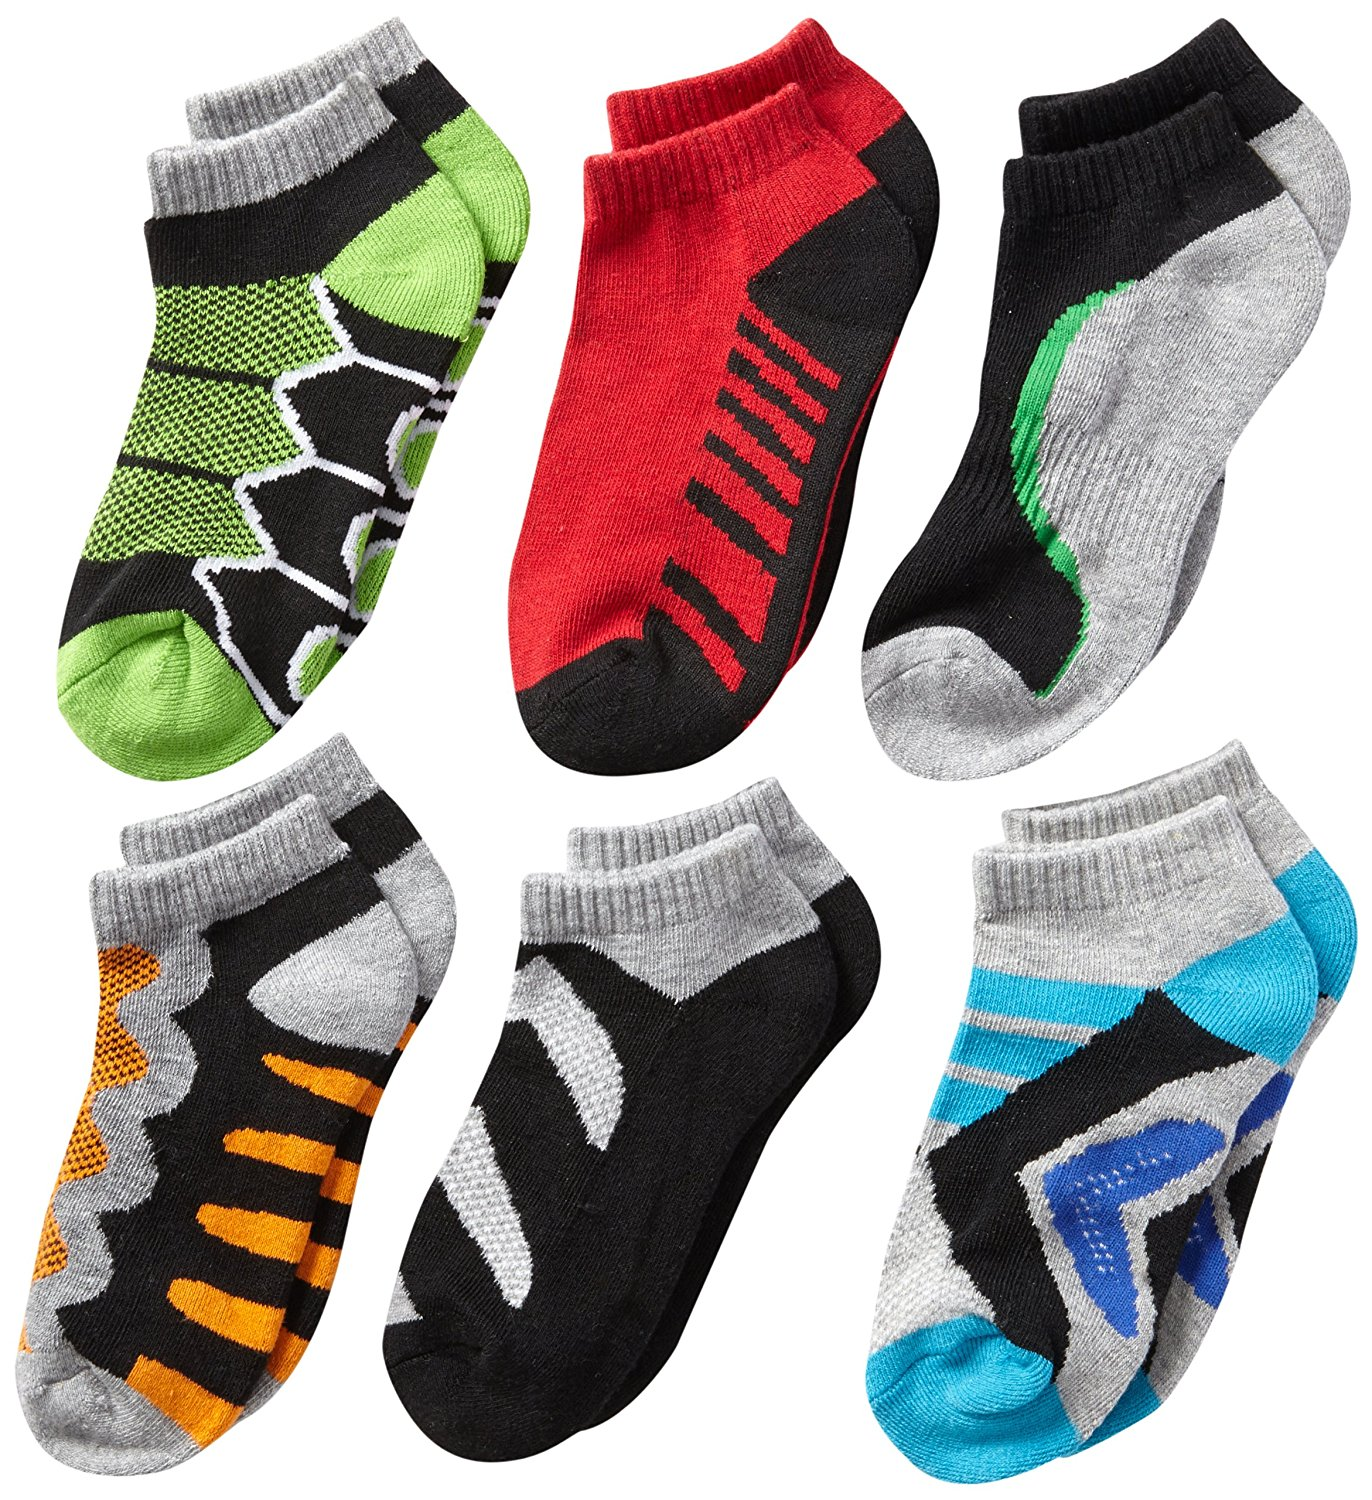 Discover the best Boys' Athletic Socks in Best Sellers. Find the top most popular items in Amazon Best Sellers. Best Sellers in Boys' Athletic Socks #1. Soxnet Acrylic Unisex Soccer Sports Team Cushion Socks 3 Pack Boys Thick Wool Socks Kids Winter Seamless Socks 6 Pack out of 5 stars $ - $ #